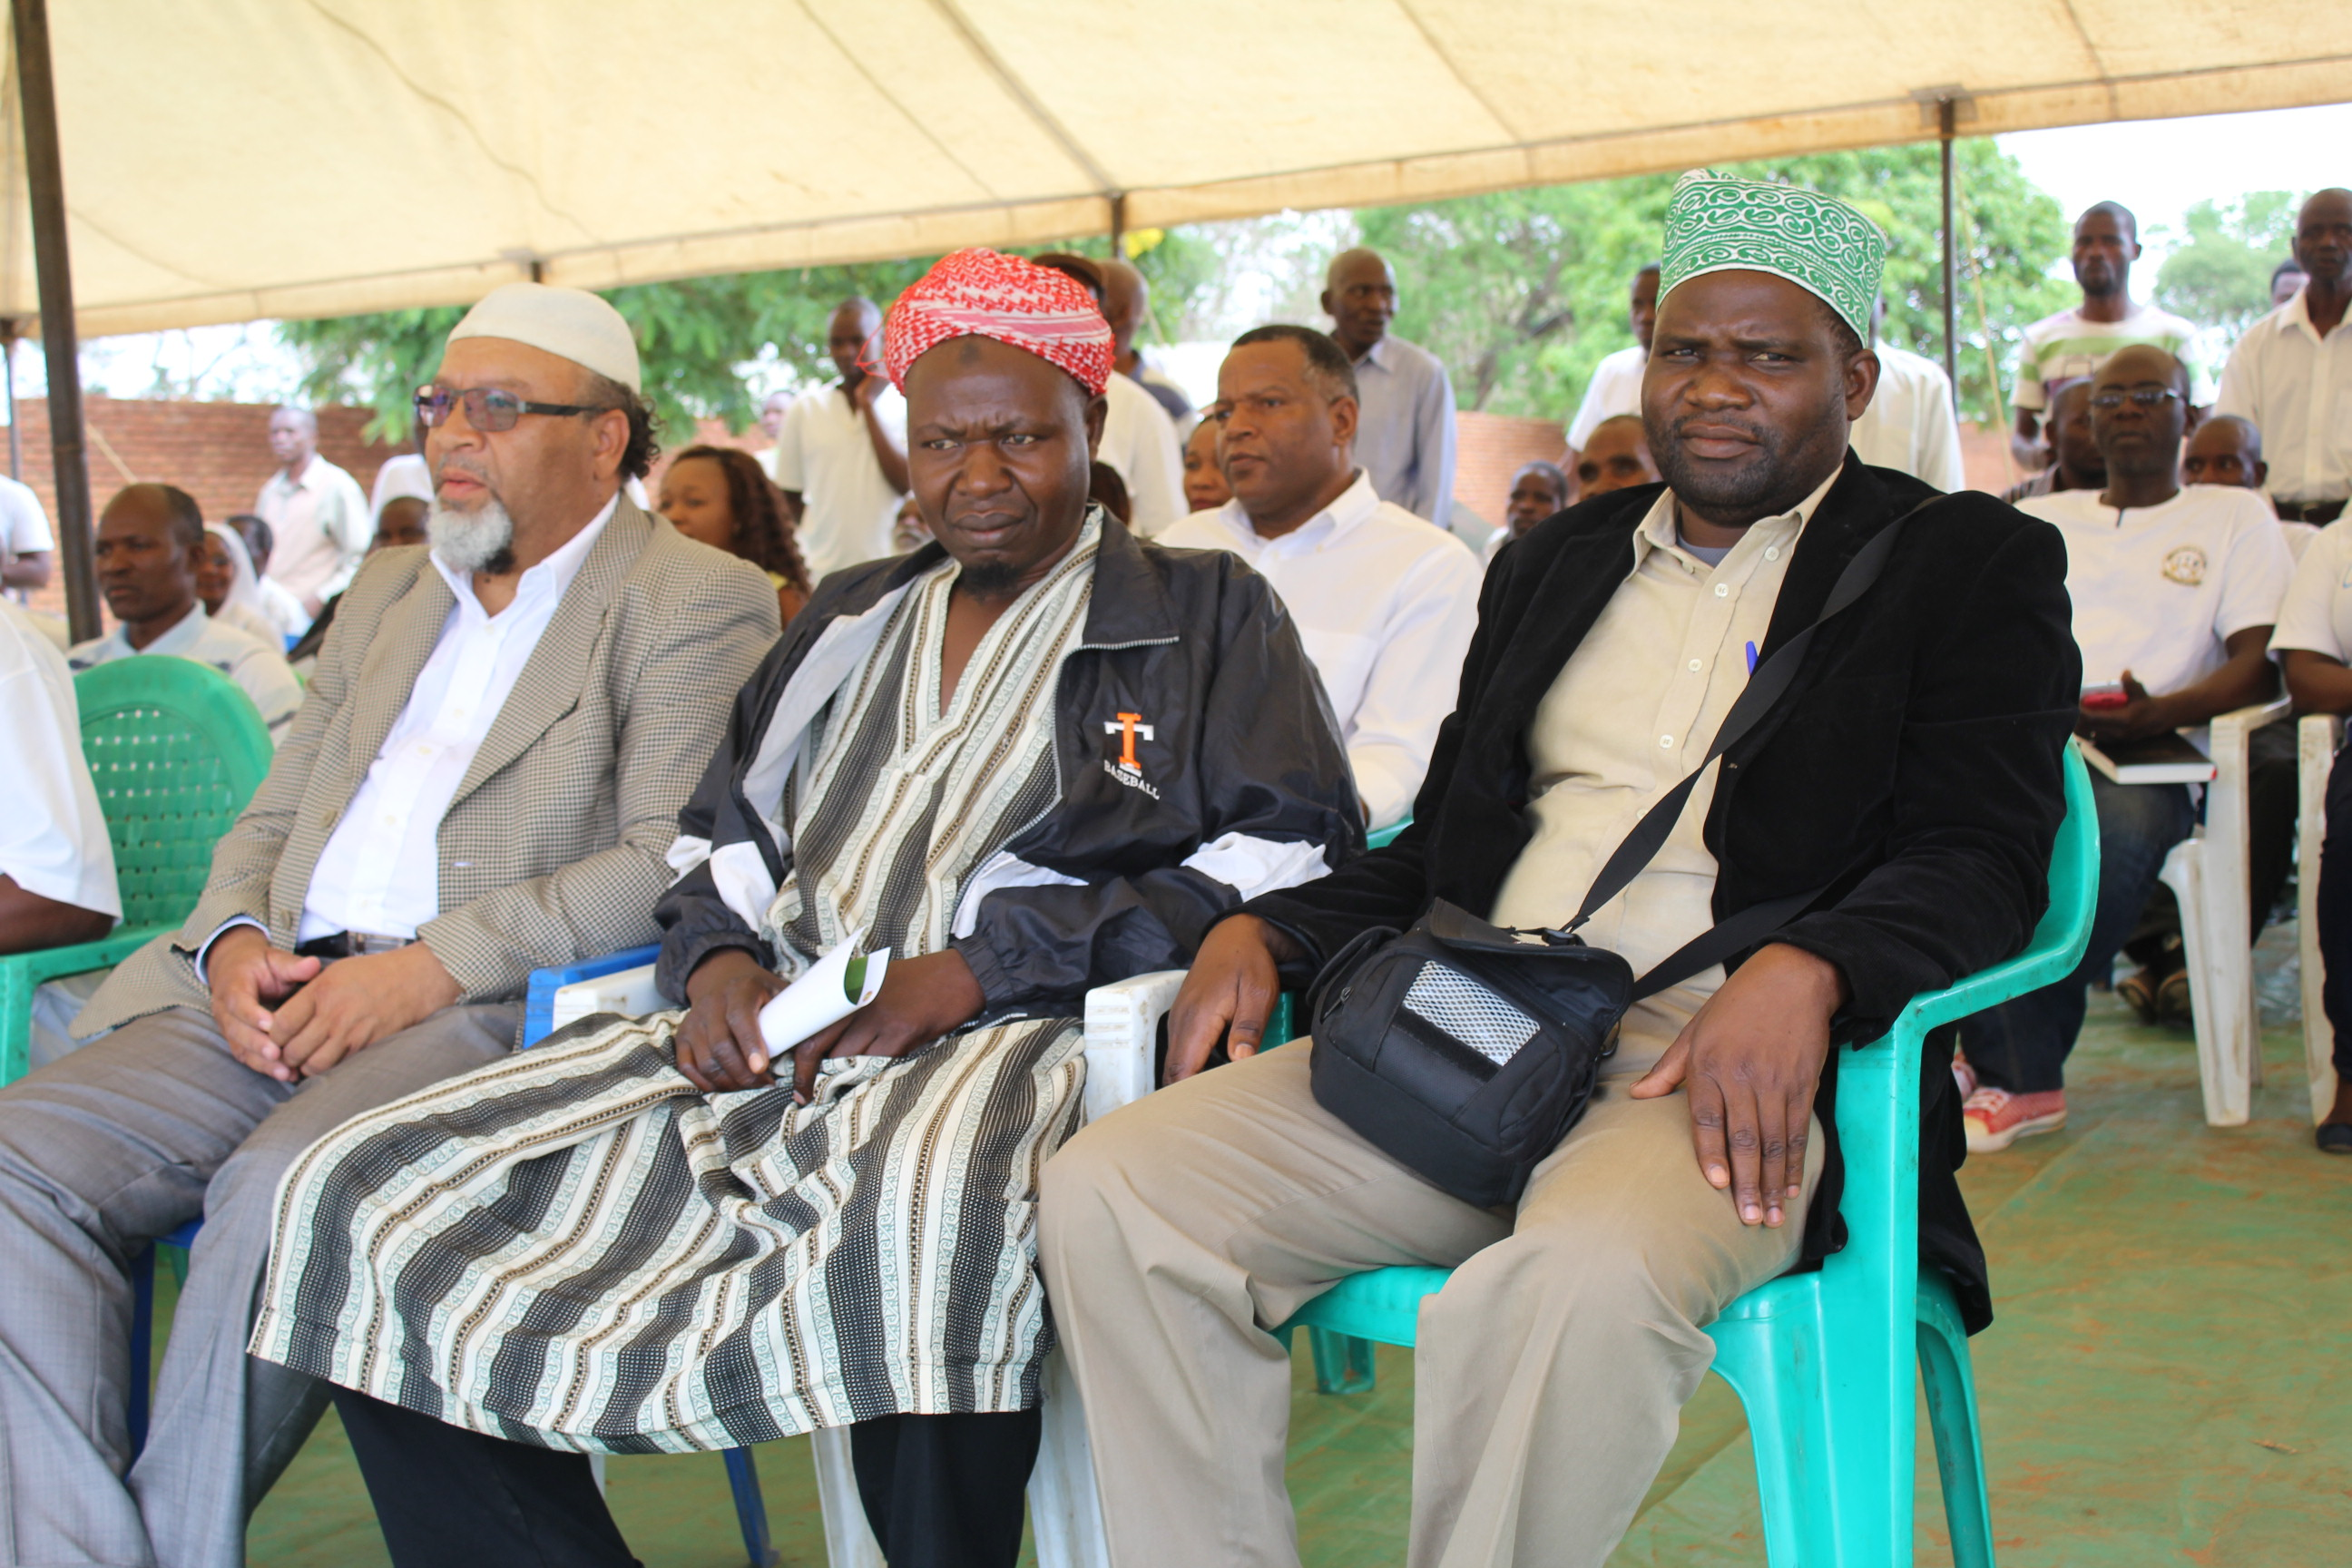 Muslim leaders supported Malawi's Dec. 6 march against abortion and same-sex marriage. (Photo courtesy of ECM)